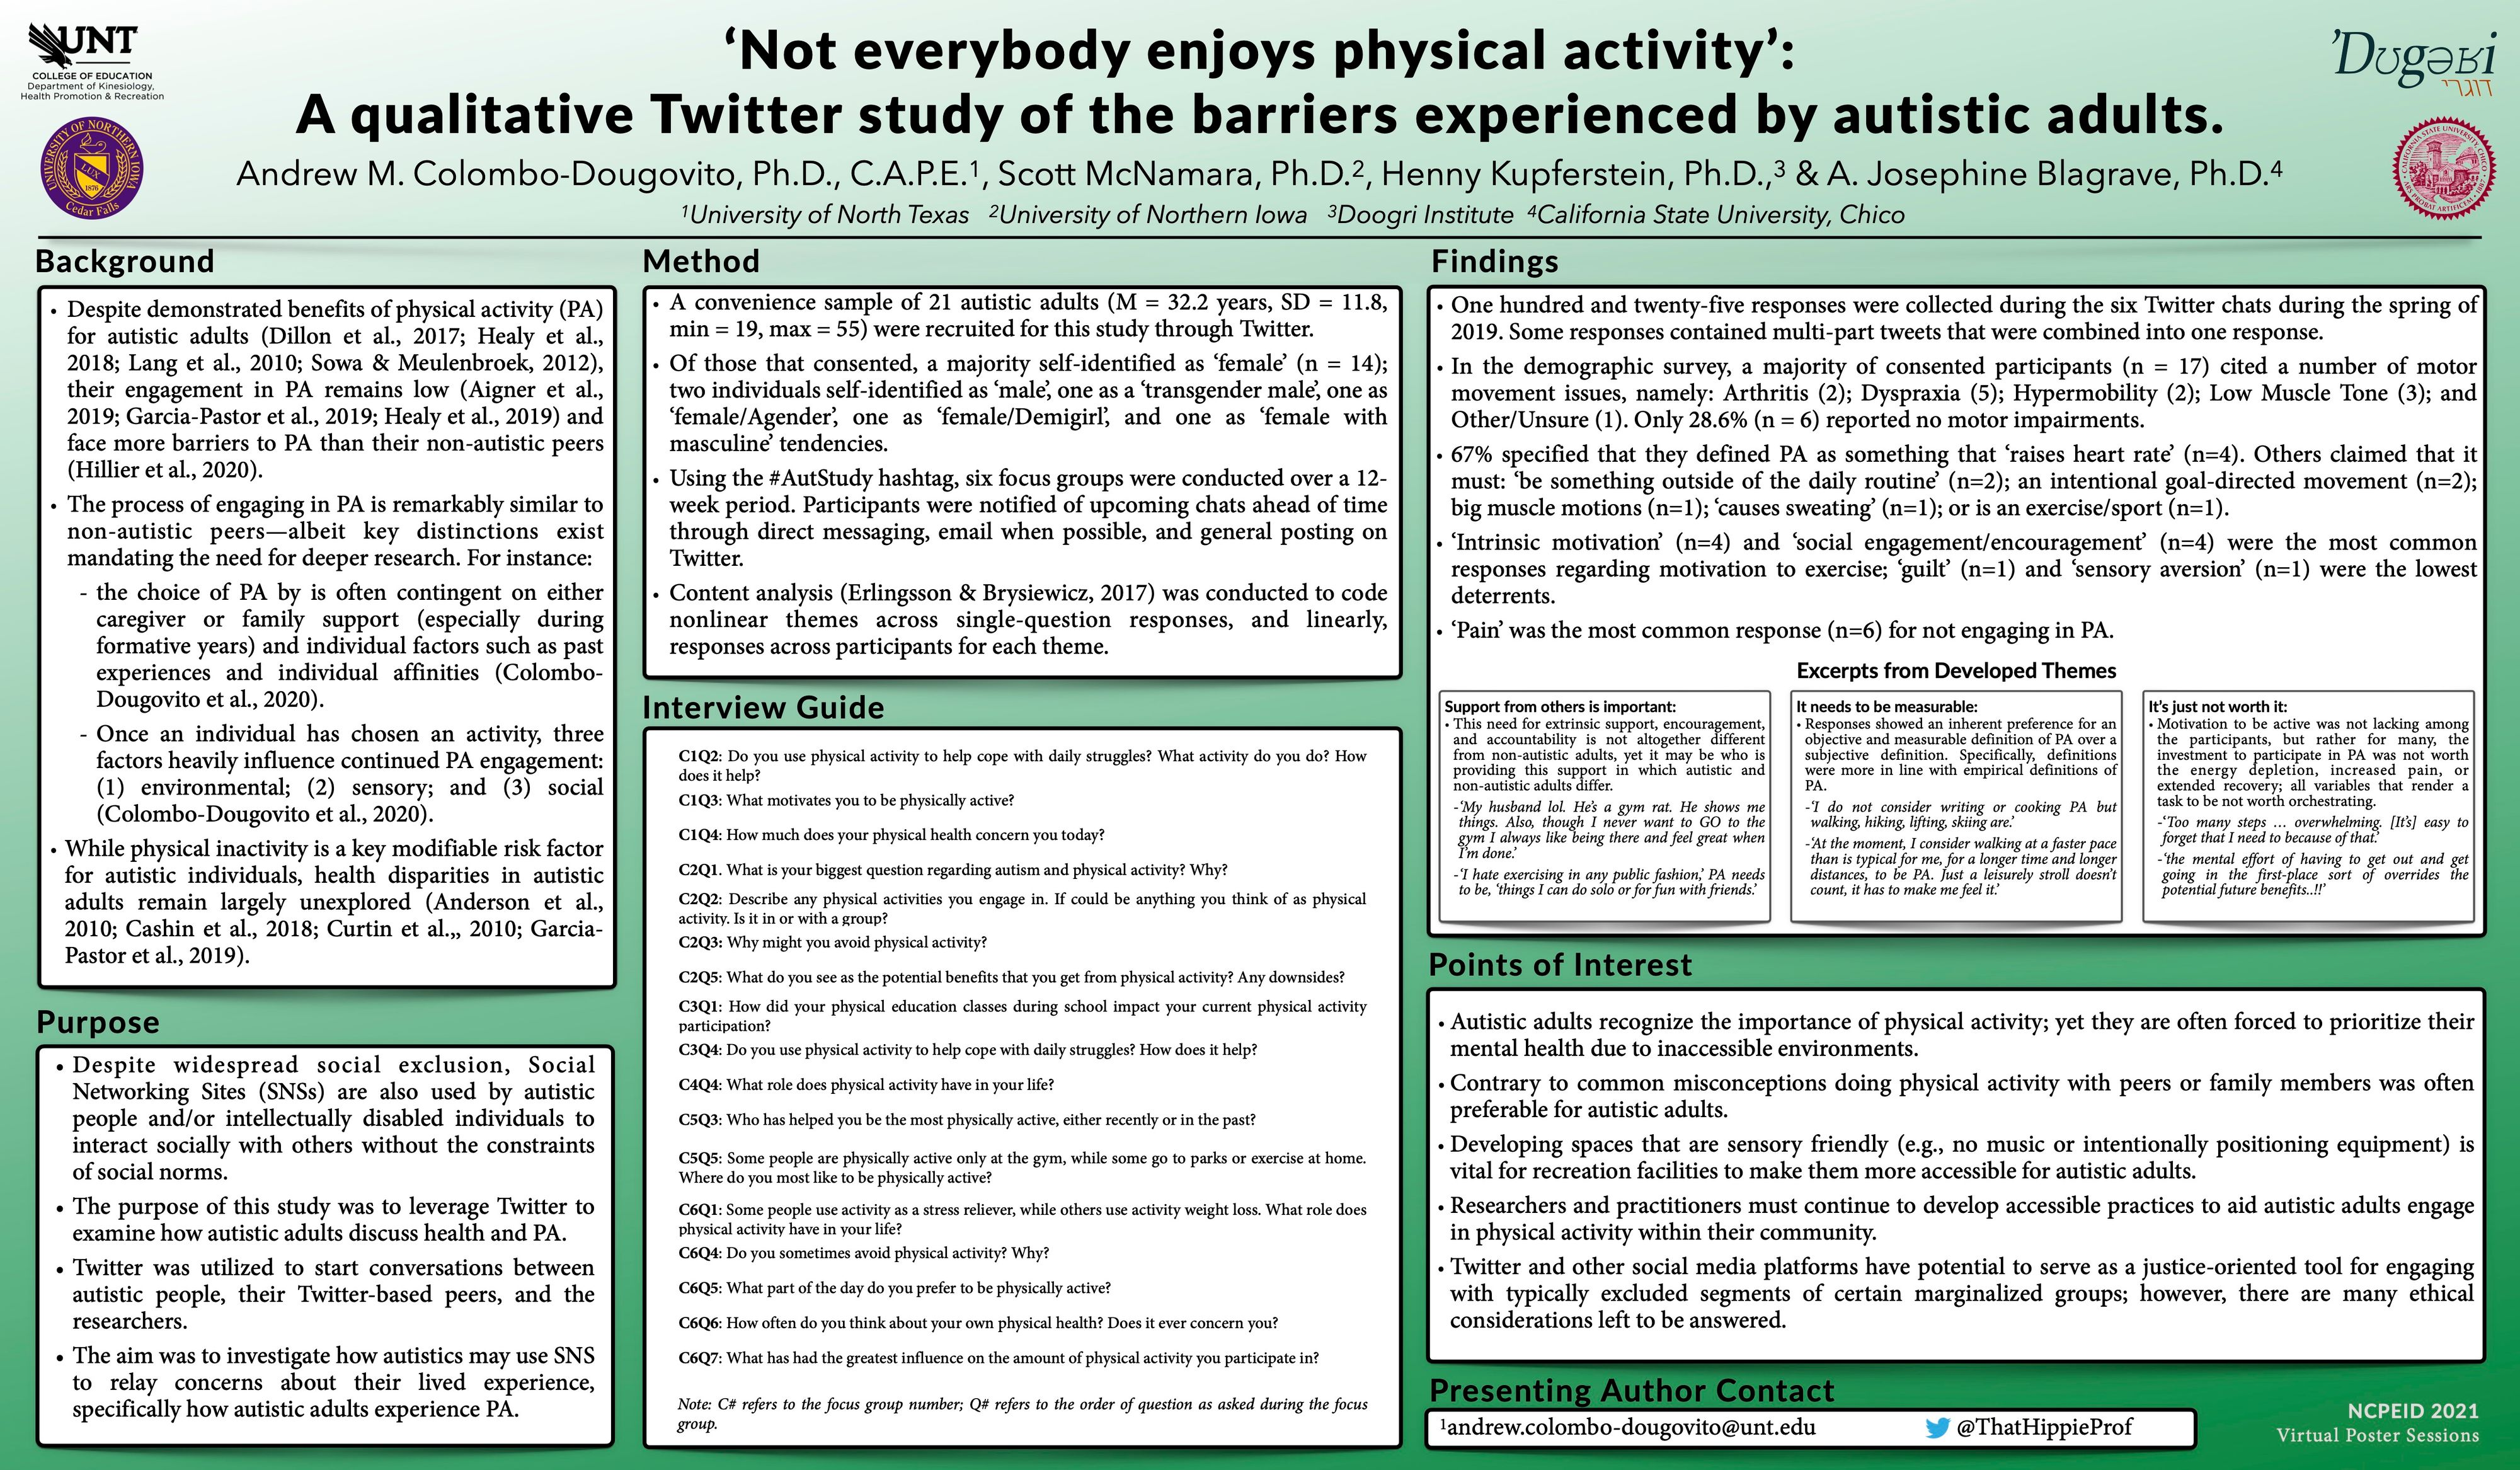 'Not everybody enjoys physical activity': A qualitative Twitter study of the barriers experienced by autistic adults